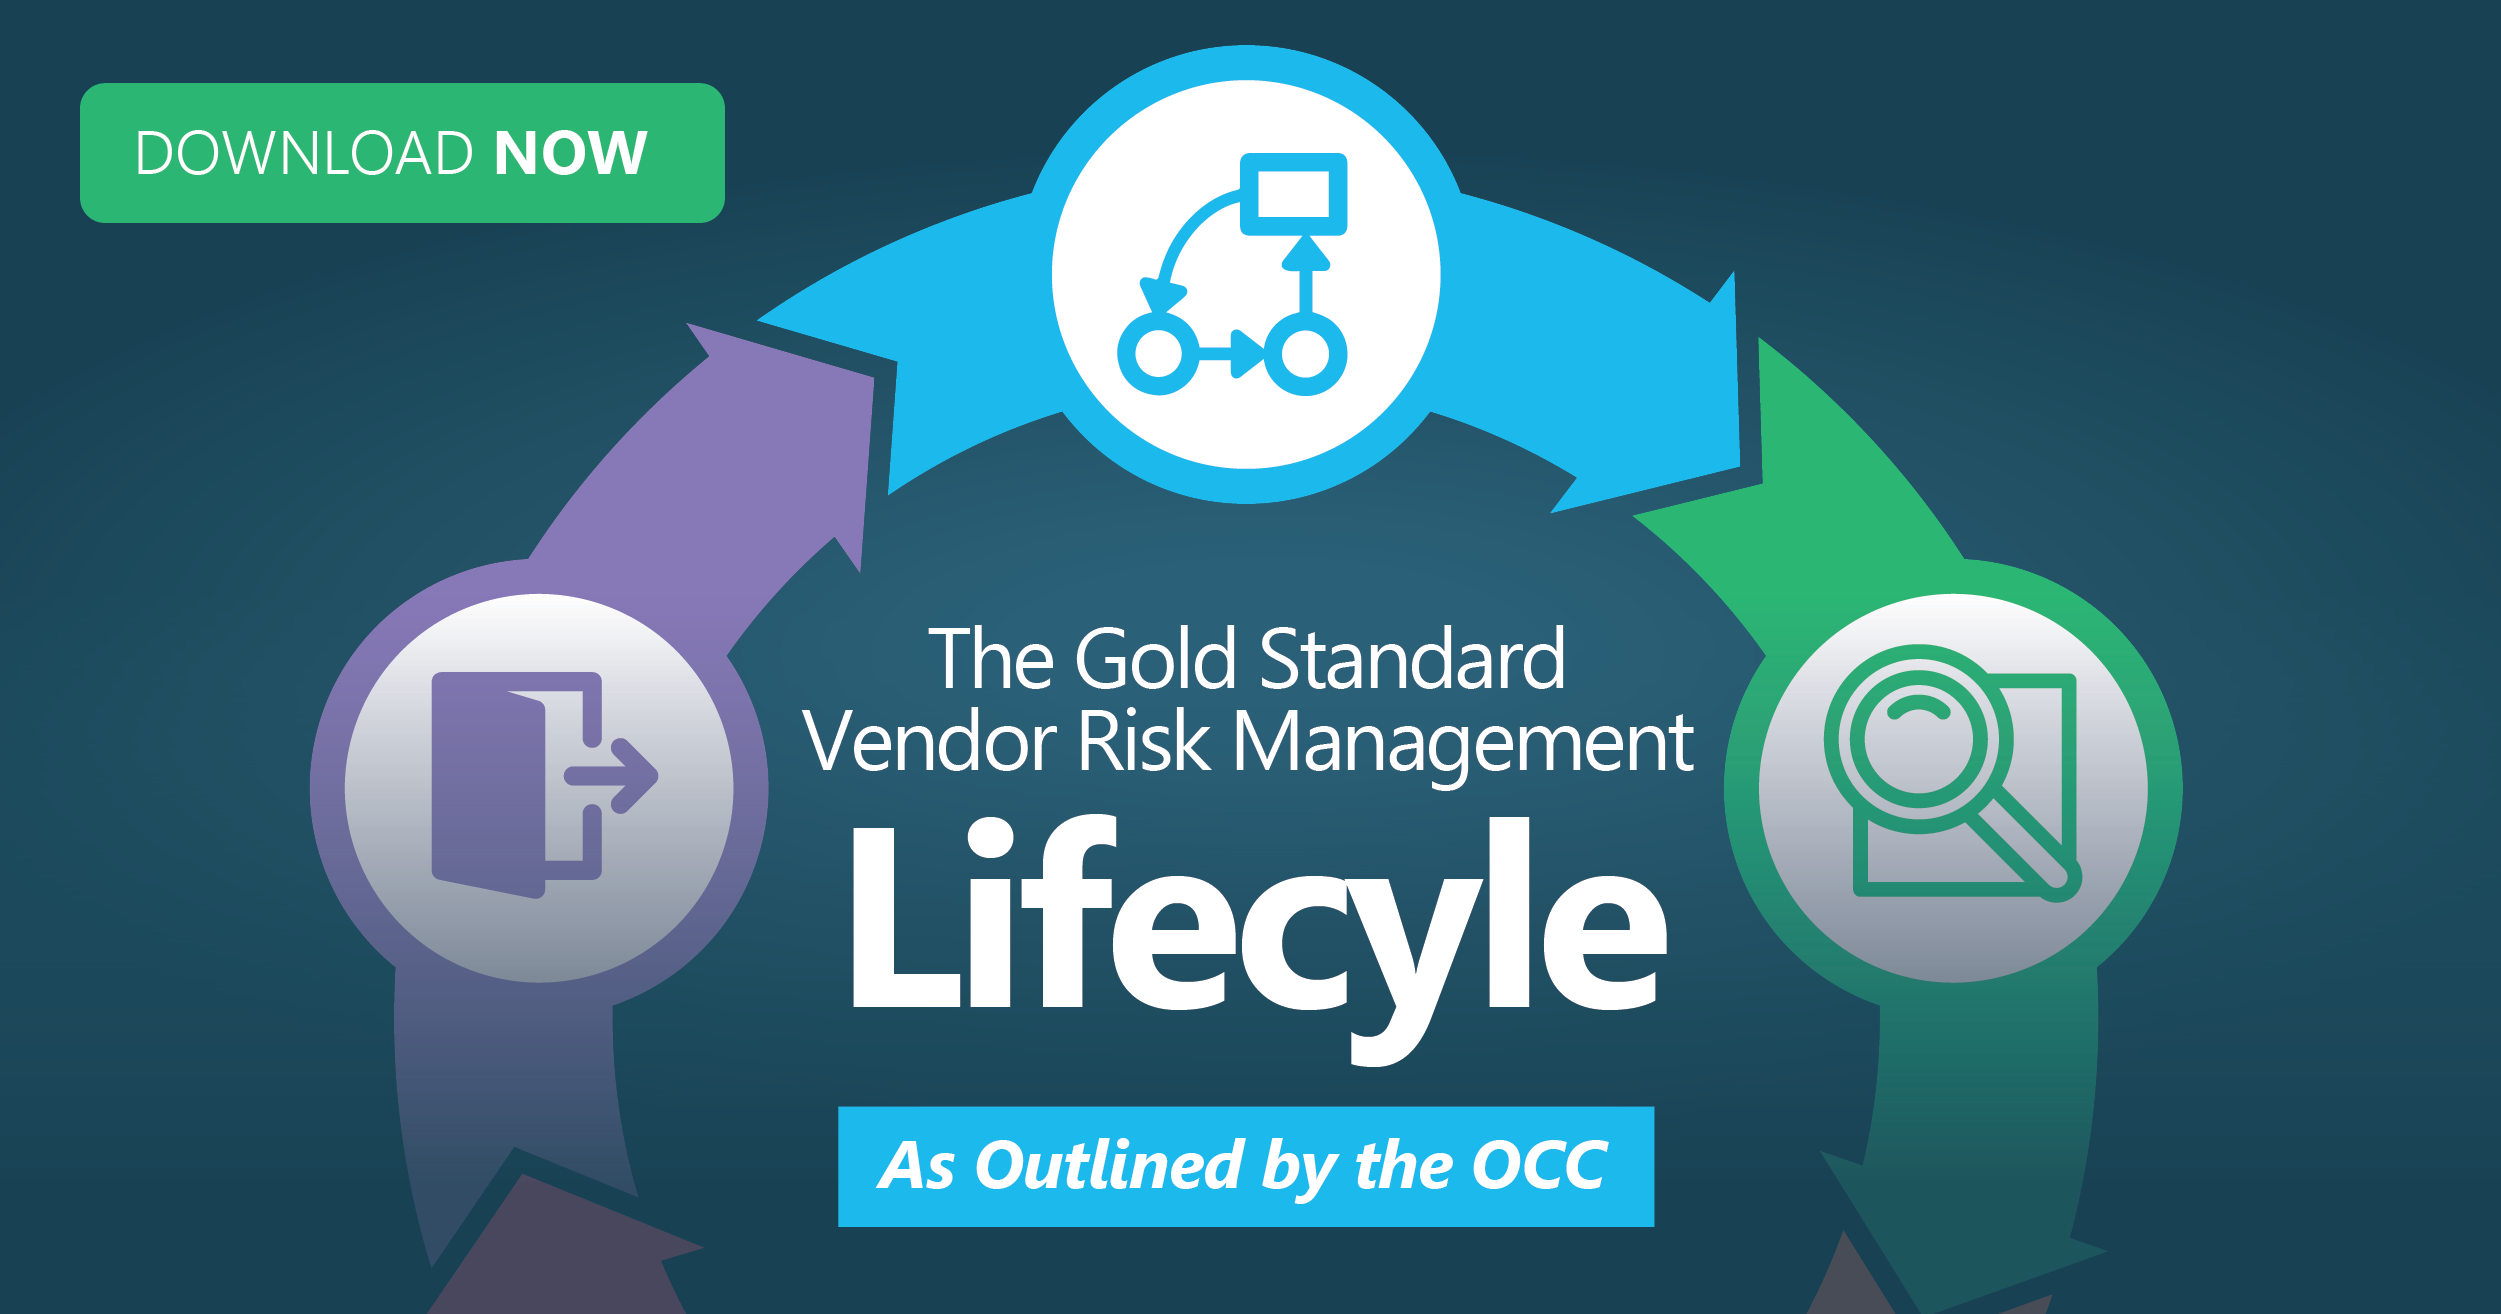 occ vendor lifecycle